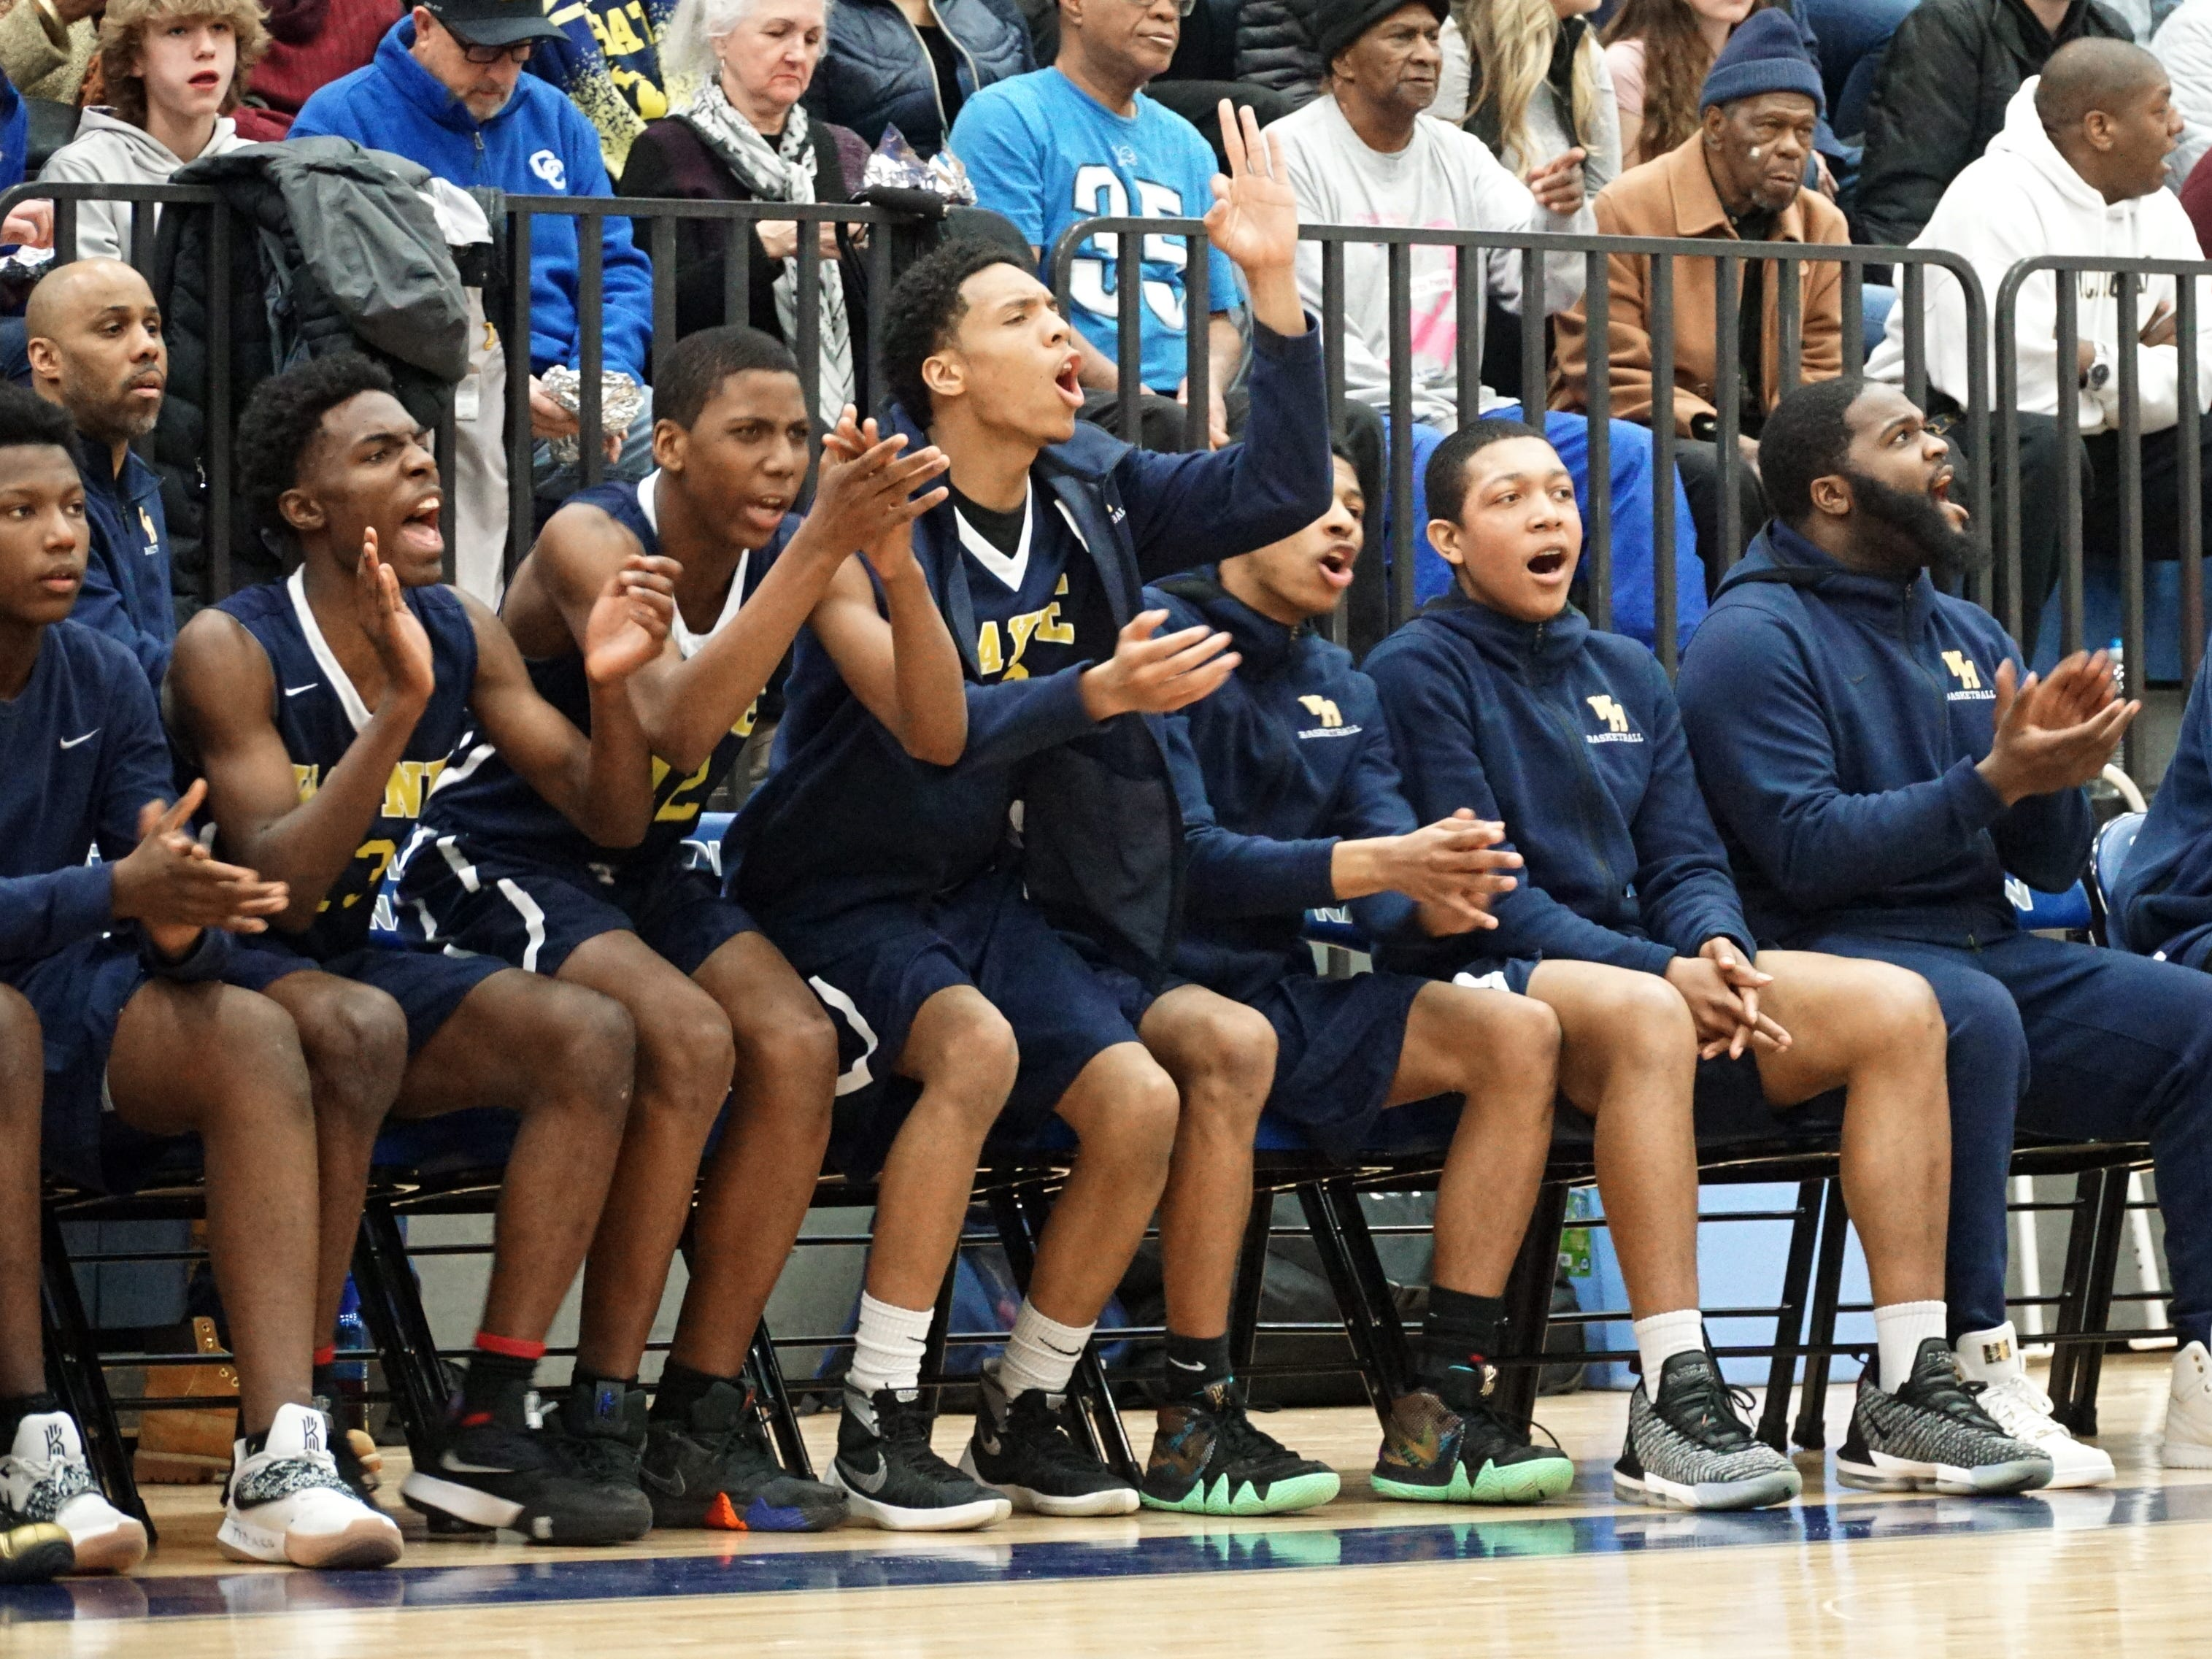 The Wayne Memorial bench has something to cheer about after a teammate hits a three-pointer.